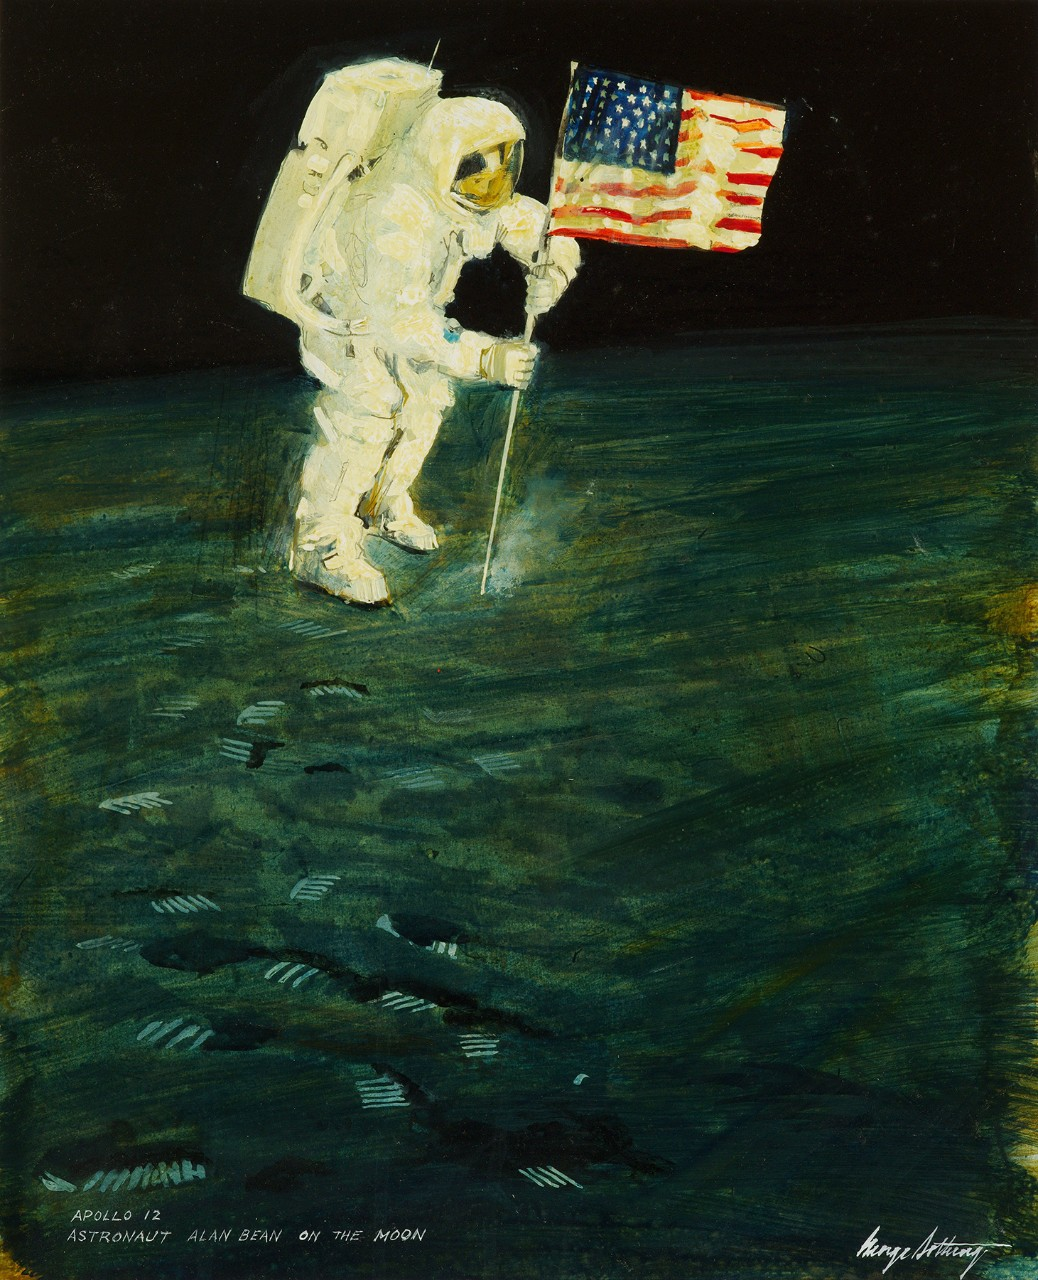 The American flag is planted on the surface of the moon